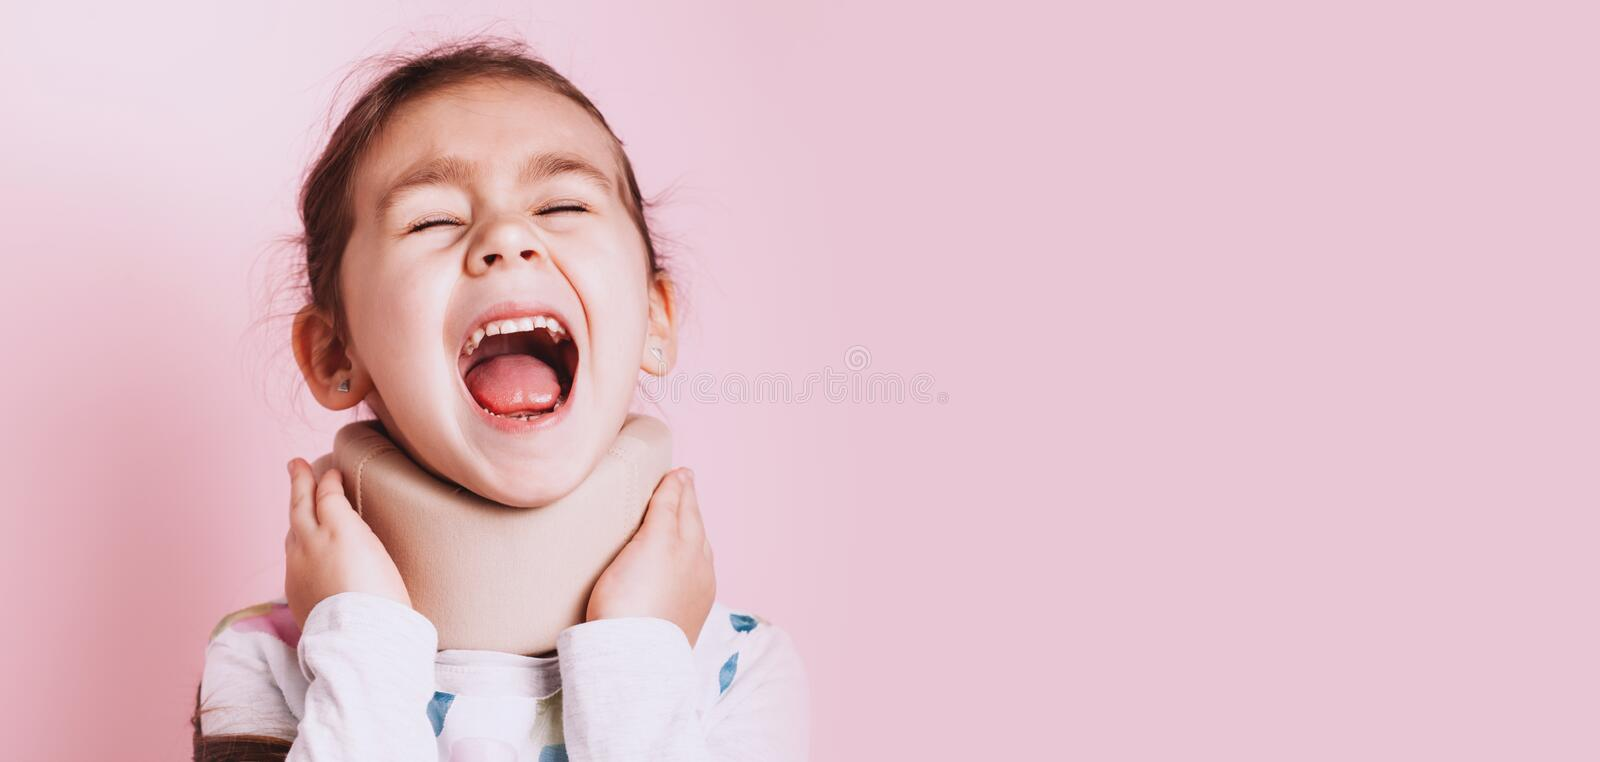 Portrait of Little girl wearing neck brace on pink background. Portrait of screaming Little girl wearing neck brace on pink background. childhood injuries stock photos